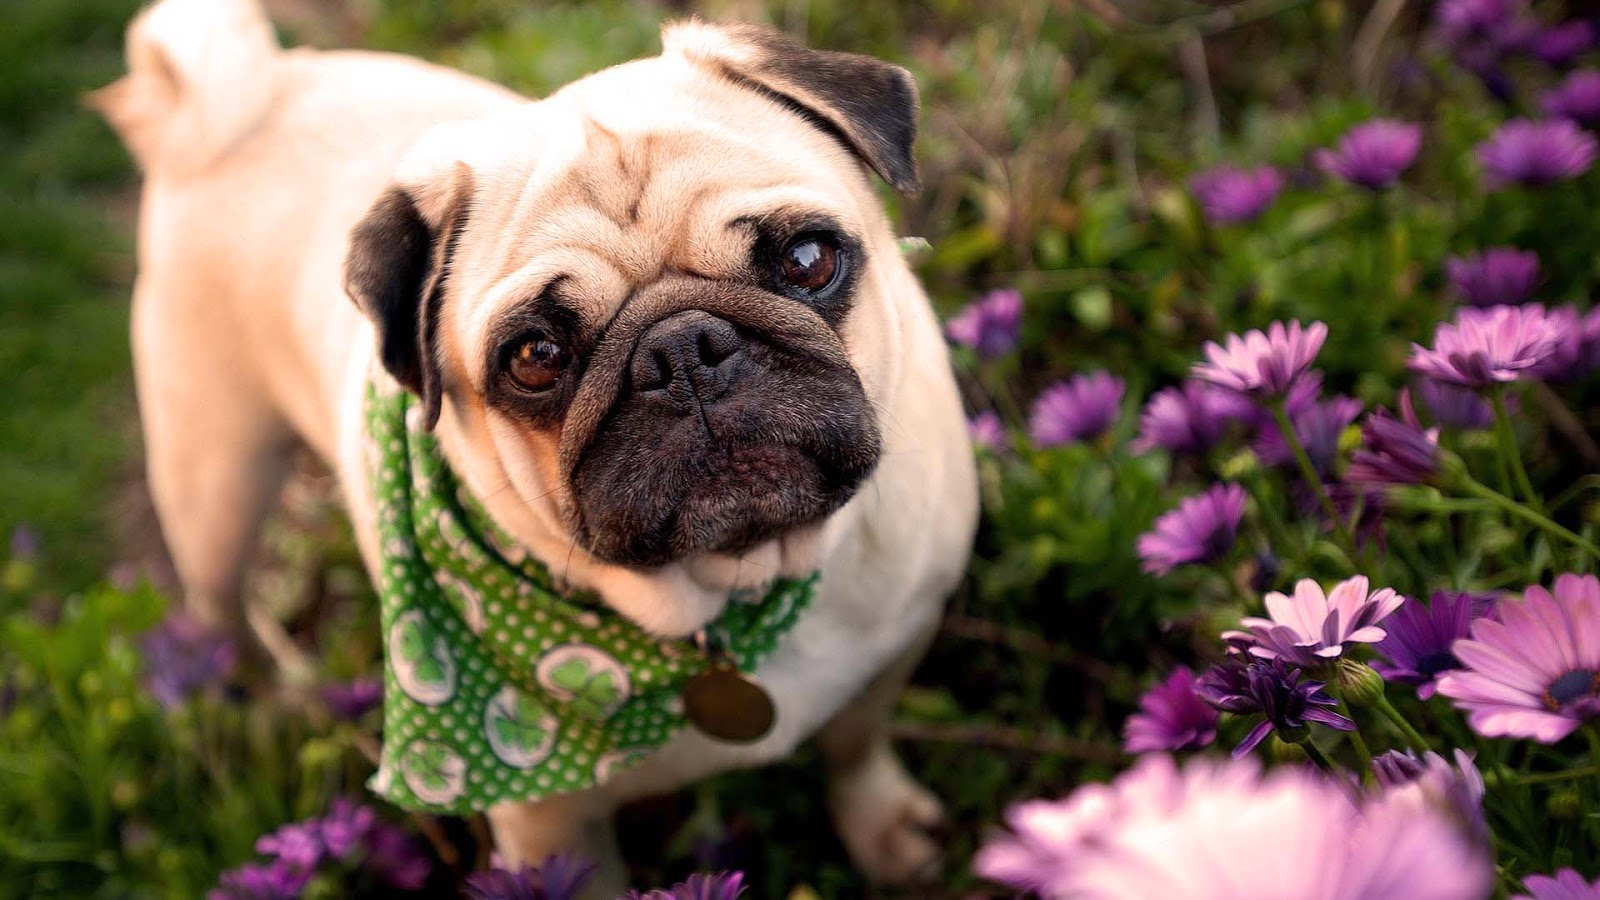 Cute Pugs Tumblr Cute pug wallpaper